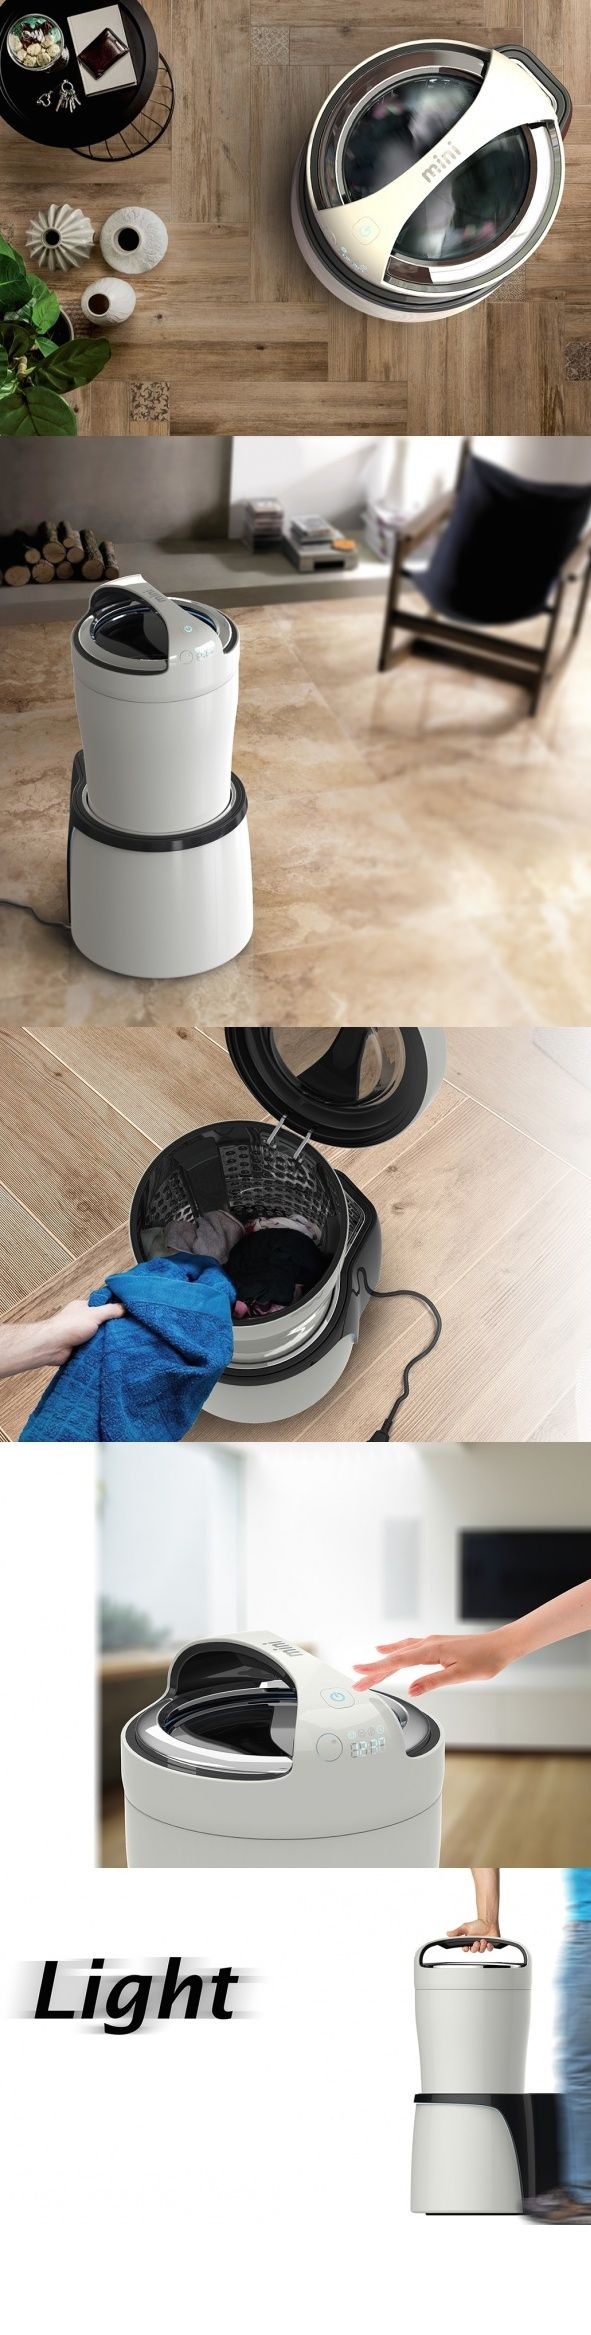 The #Mini #Washing #Machine is exactly as it sounds. Mini! Despite its diminutive size, it packs a powerful punch to small loads of dirty #laundry. #Design #YankoDesign #Innovative #Creative #Living #Home #Appliances